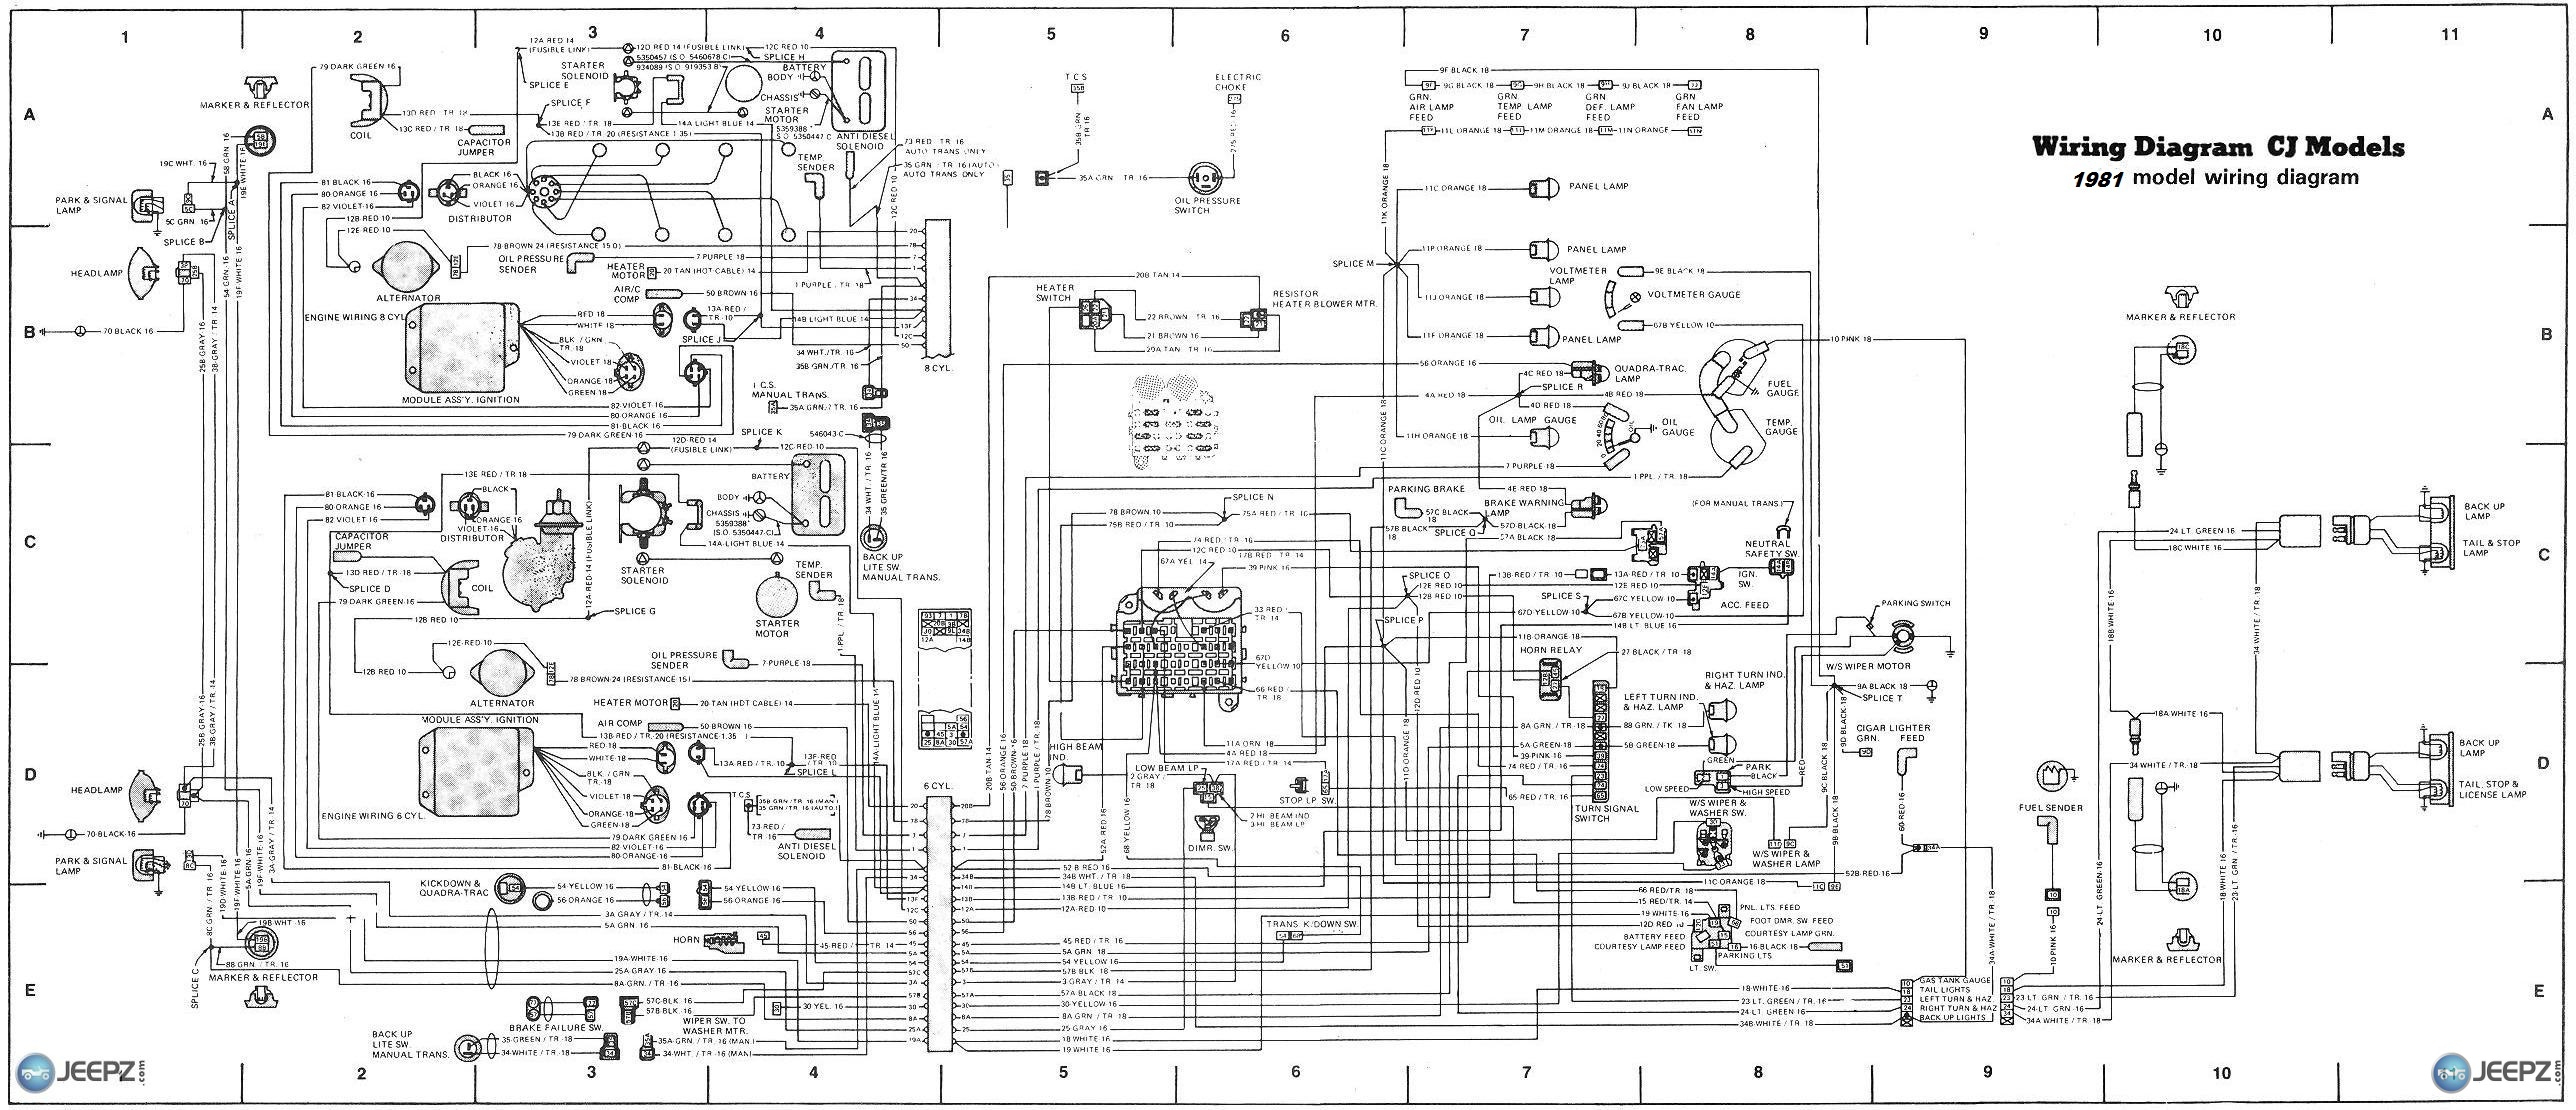 Painless Wiring Harness Diagram 73 Jeep - Wiring Diagrams Hubs - Painless Wiring Harness Diagram